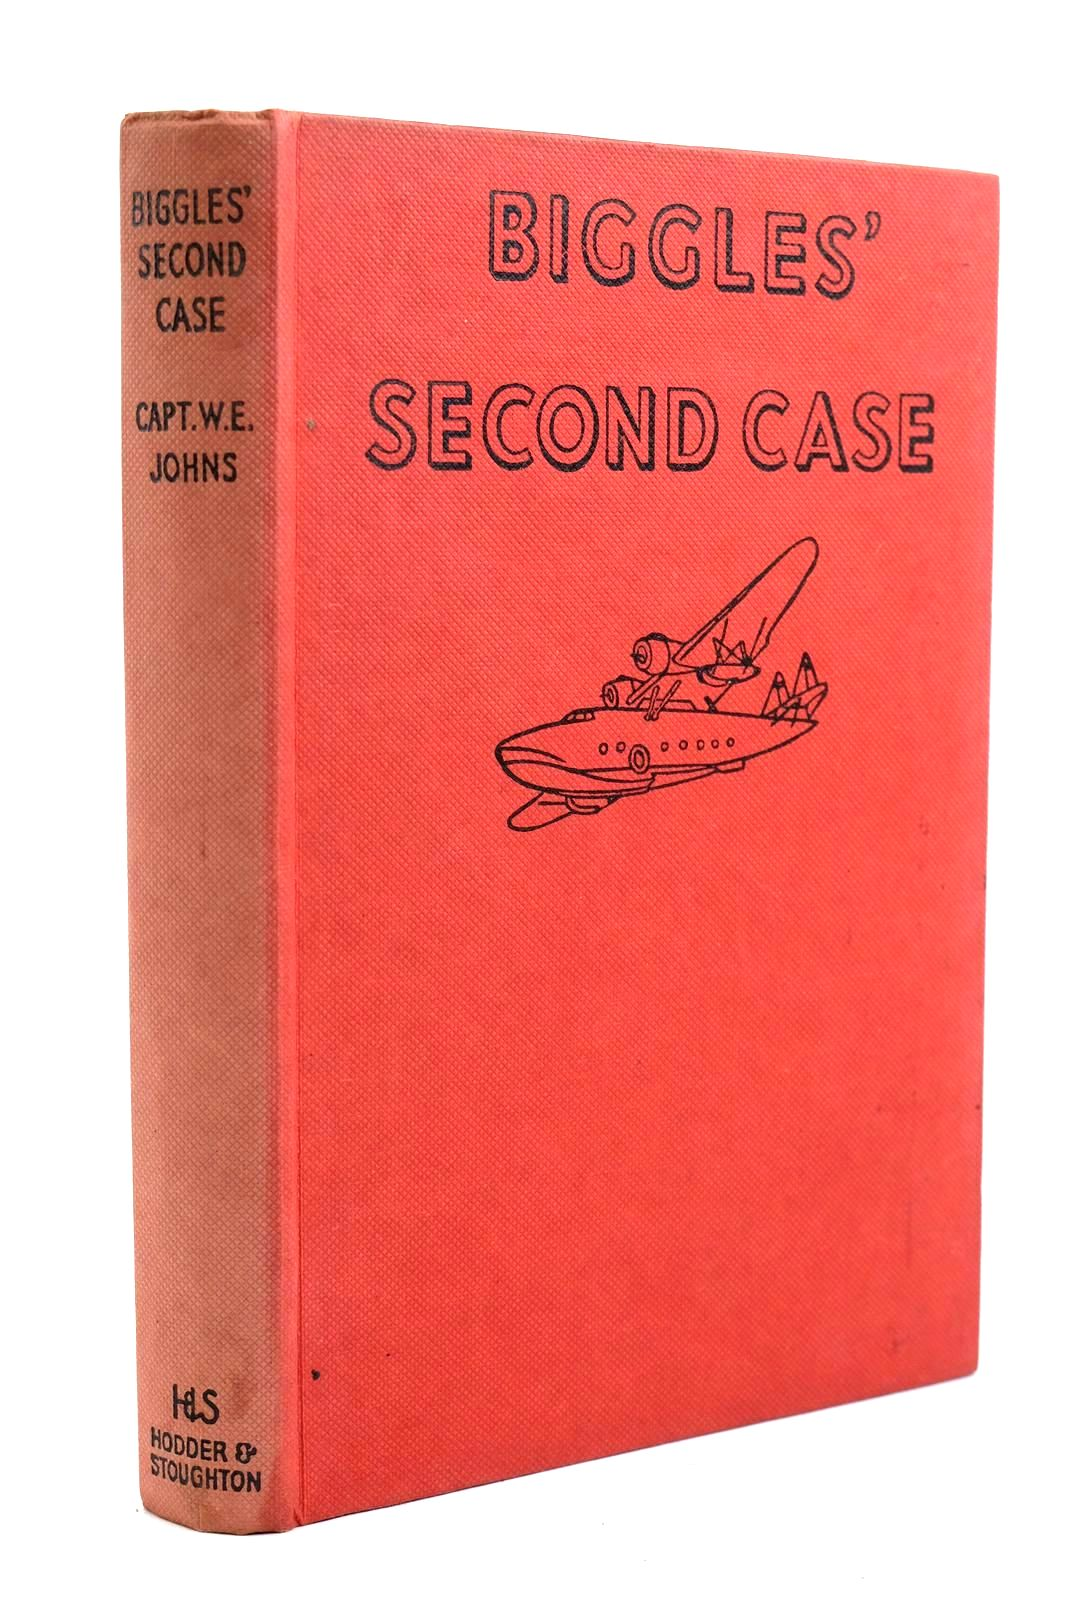 Photo of BIGGLES' SECOND CASE written by Johns, W.E. illustrated by Stead,  published by Hodder & Stoughton (STOCK CODE: 1320691)  for sale by Stella & Rose's Books